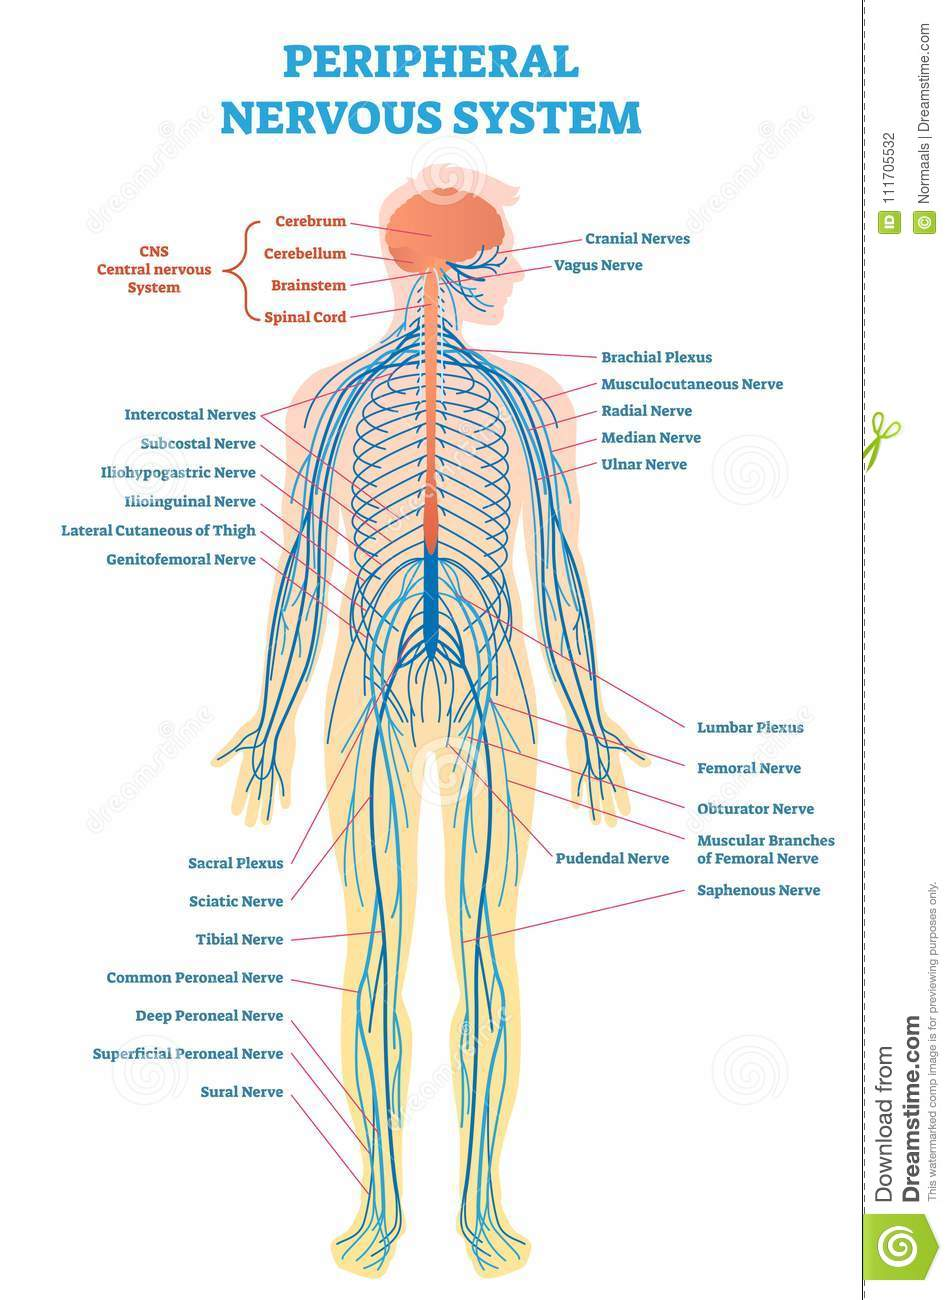 Peripheral Nervous System Medical Vector Illustration Diagram With